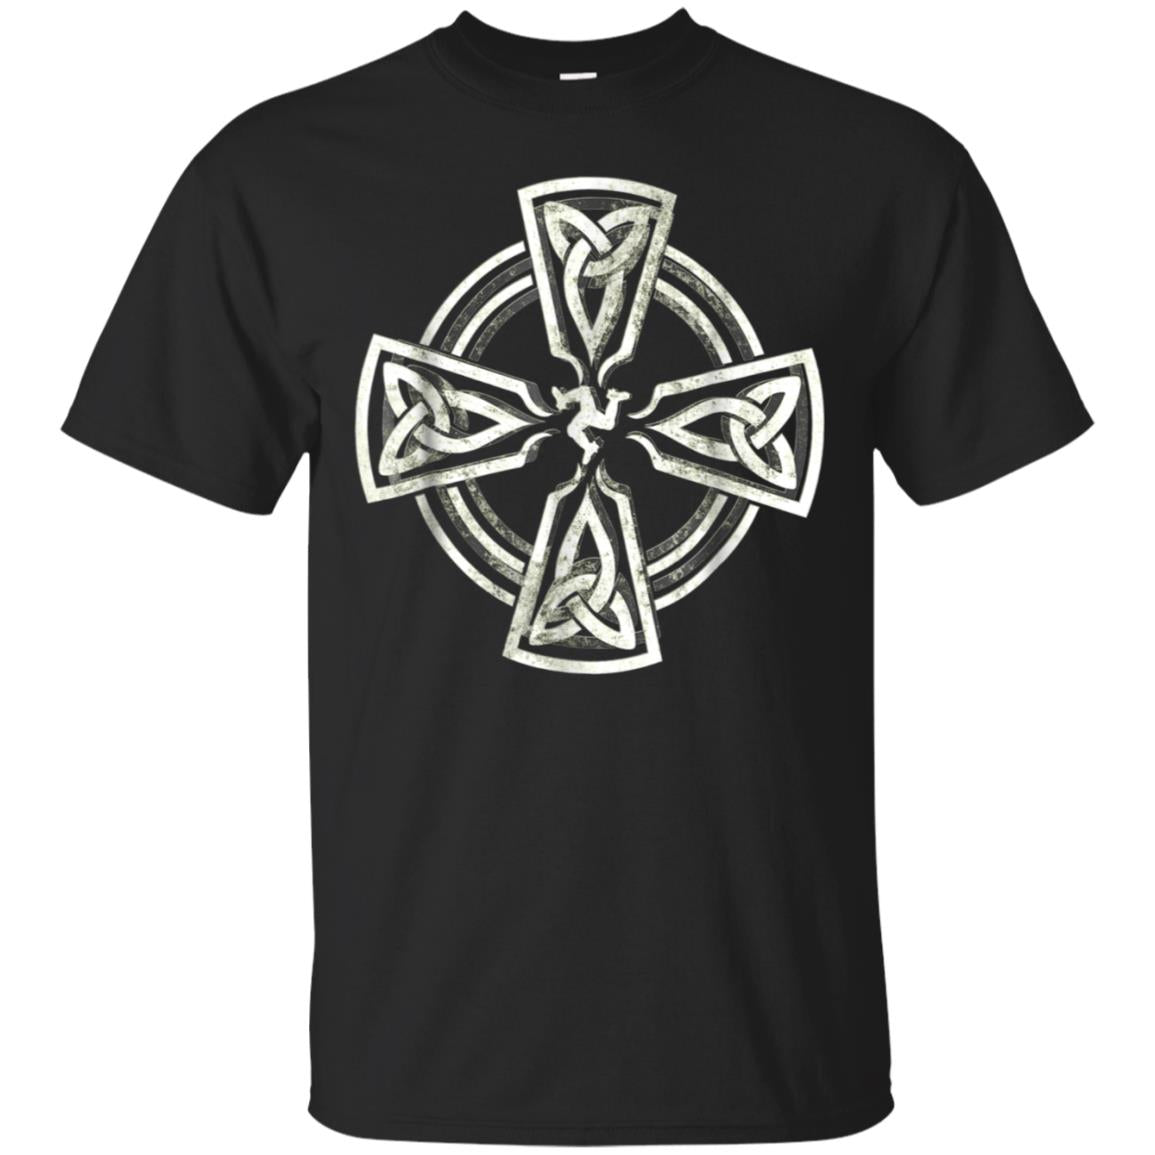 Celtic Cross Shirt Manx Irish Cross Celtic Knots Vintage 99promocode